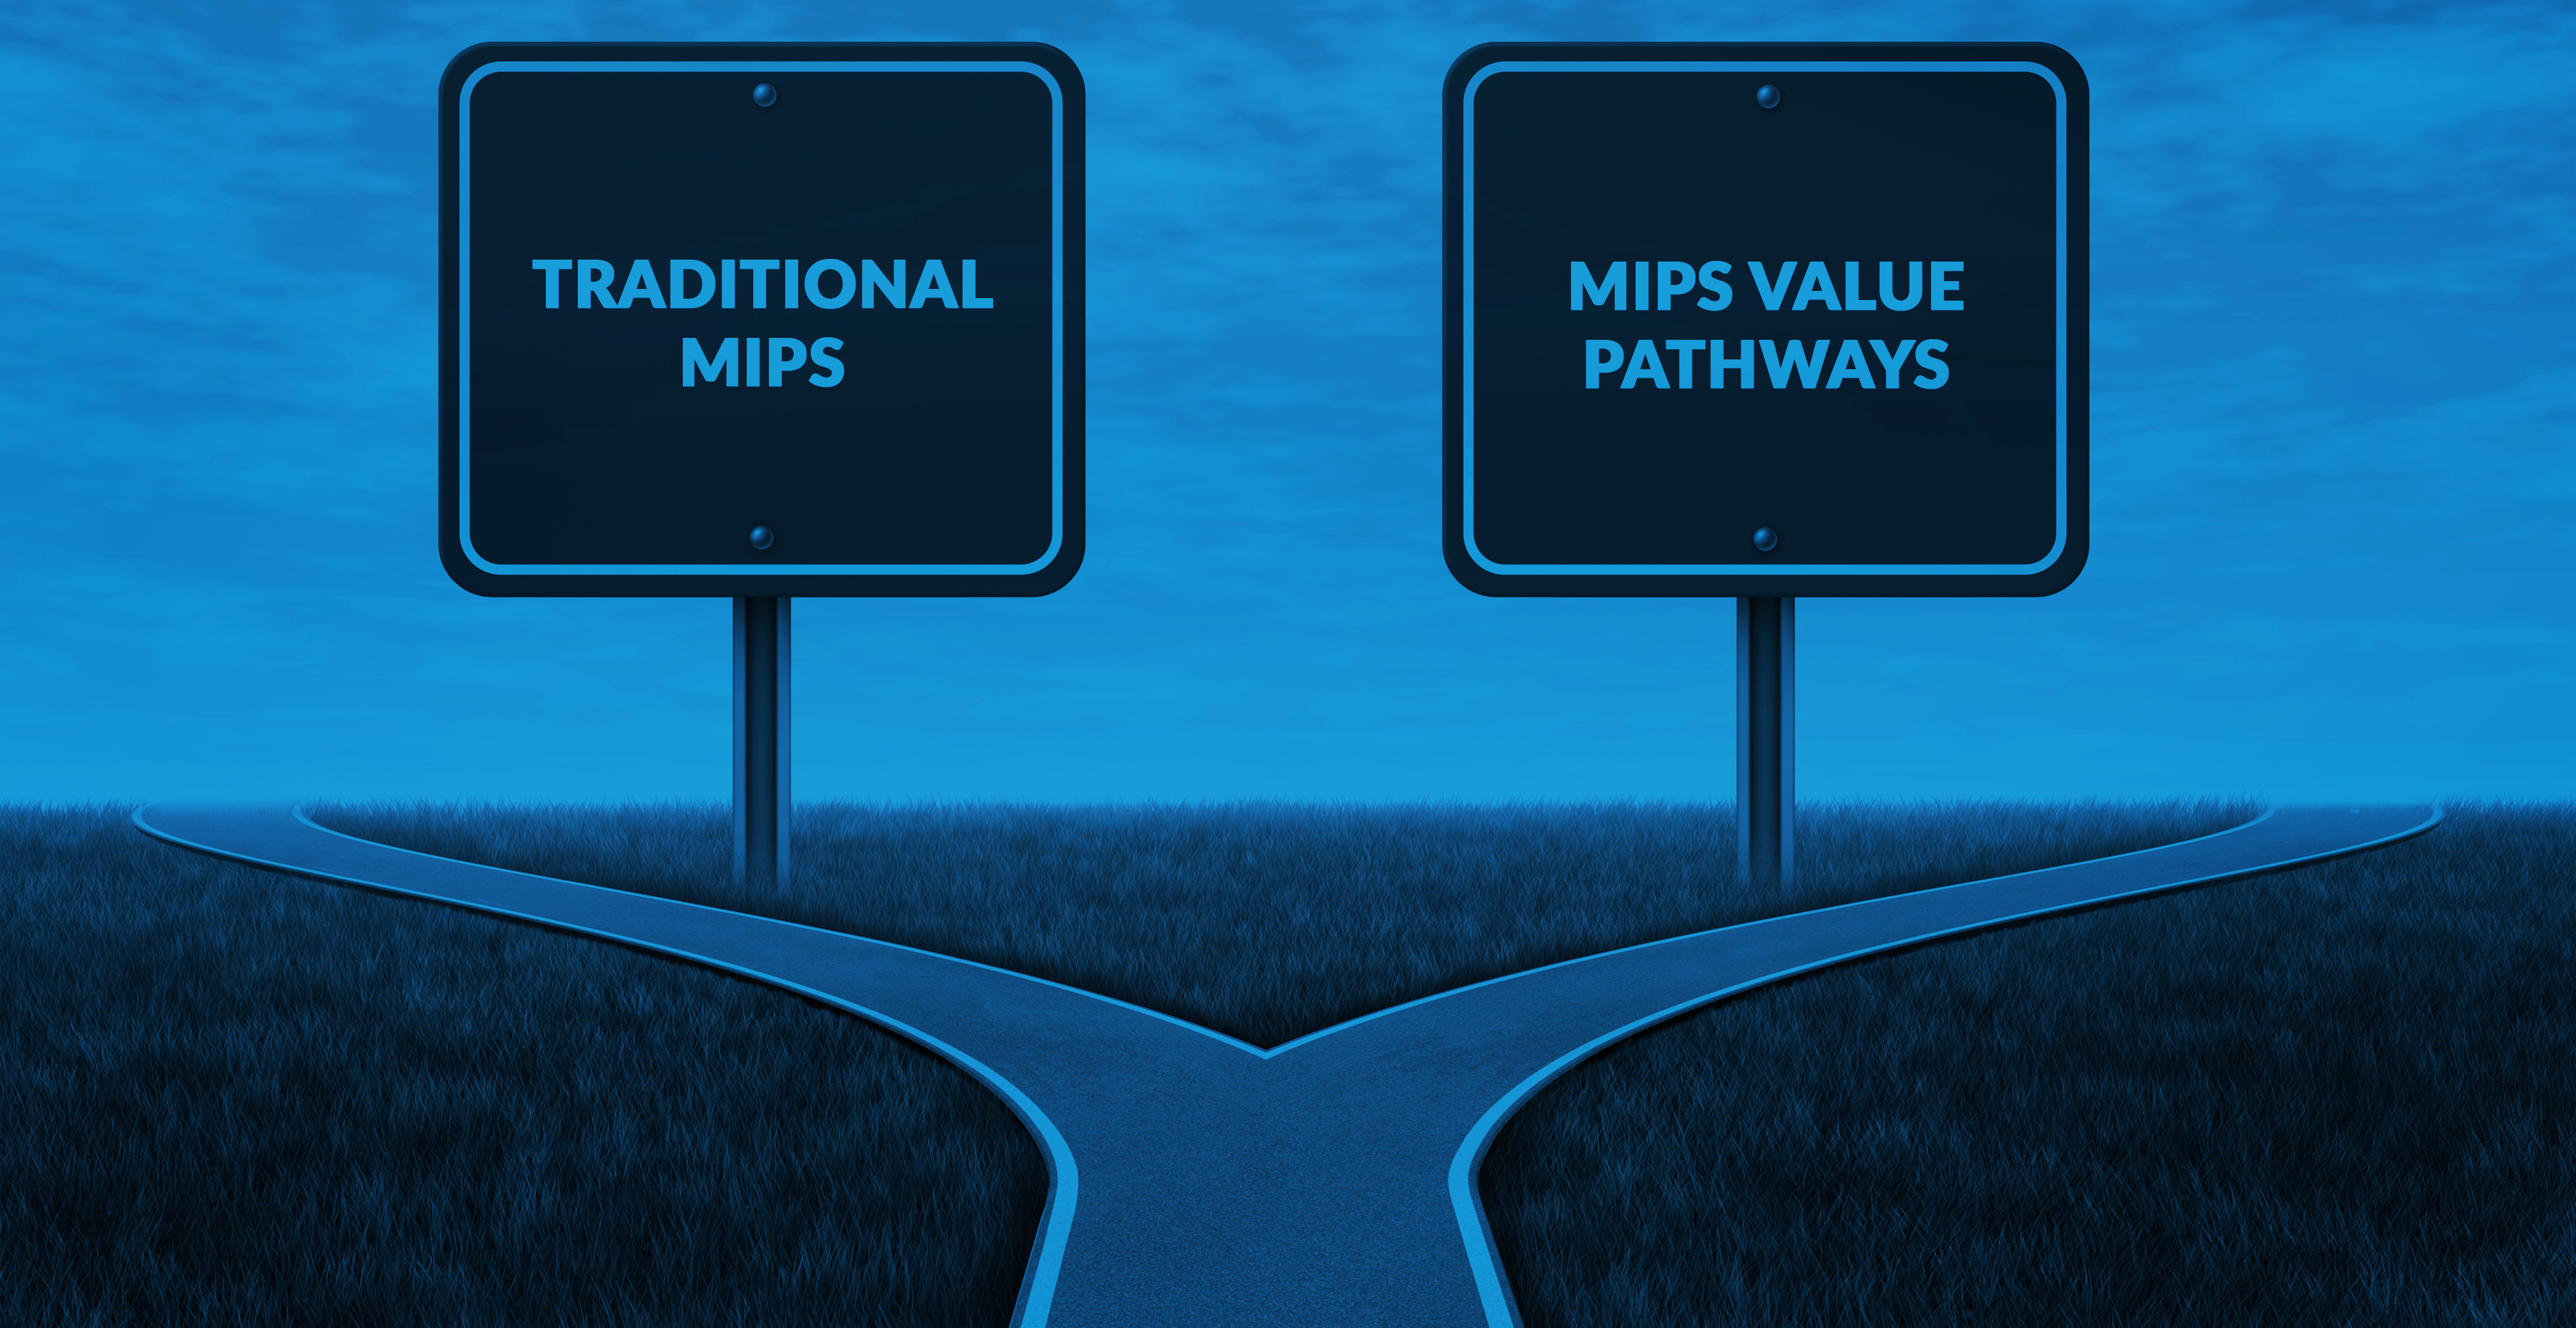 Traditional MIPS and MIPS Value Pathways